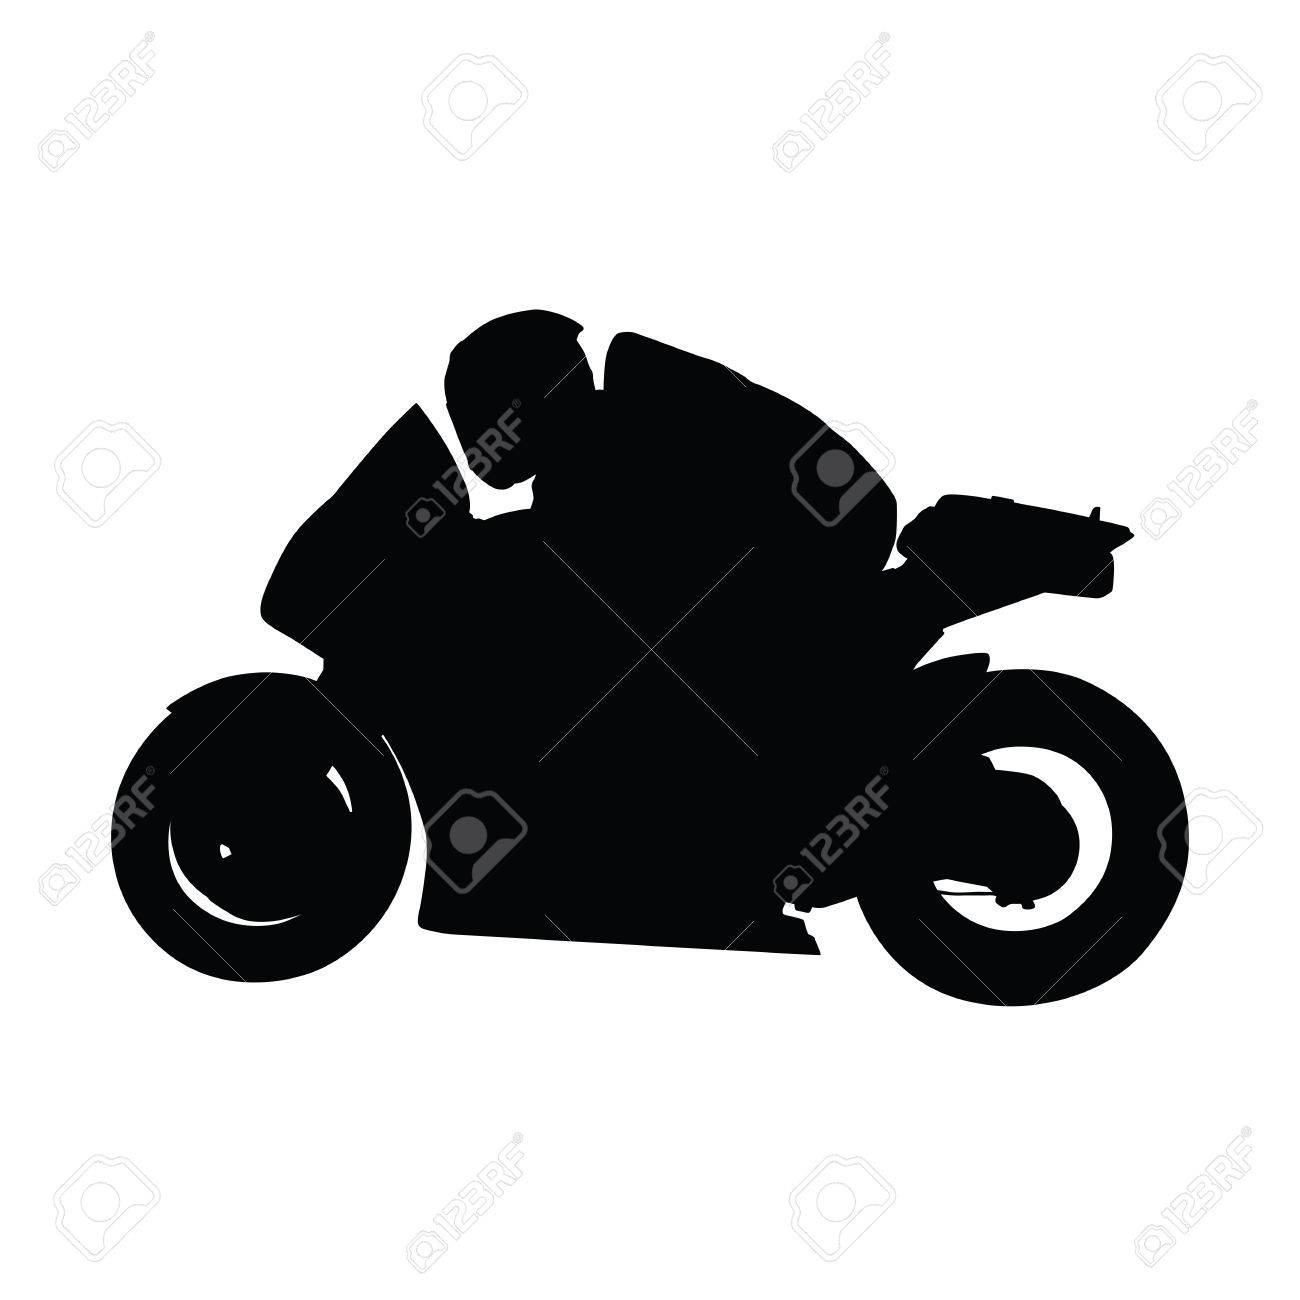 Motorcycle Vector Silhouette Isolated Road Motorbike Side View